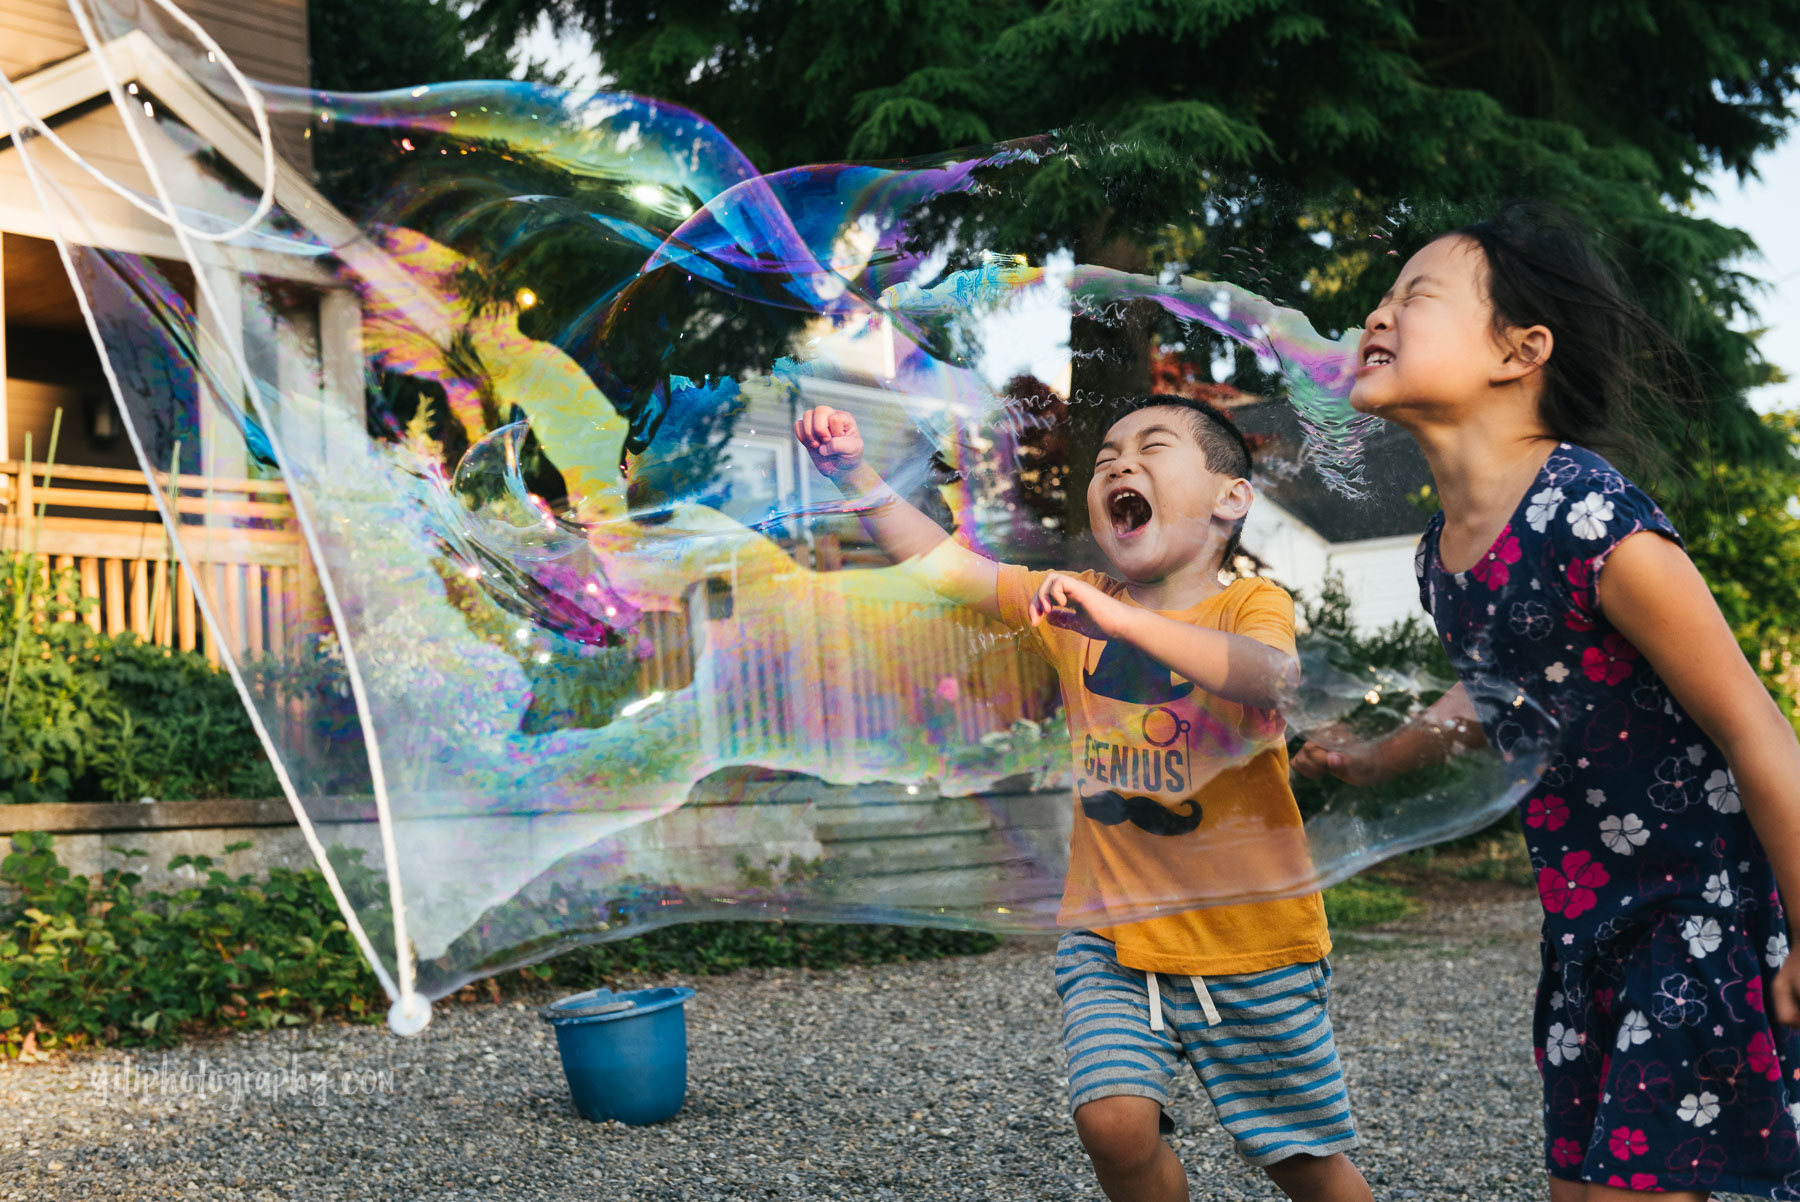 boy with big grin popping giant bubble with sister